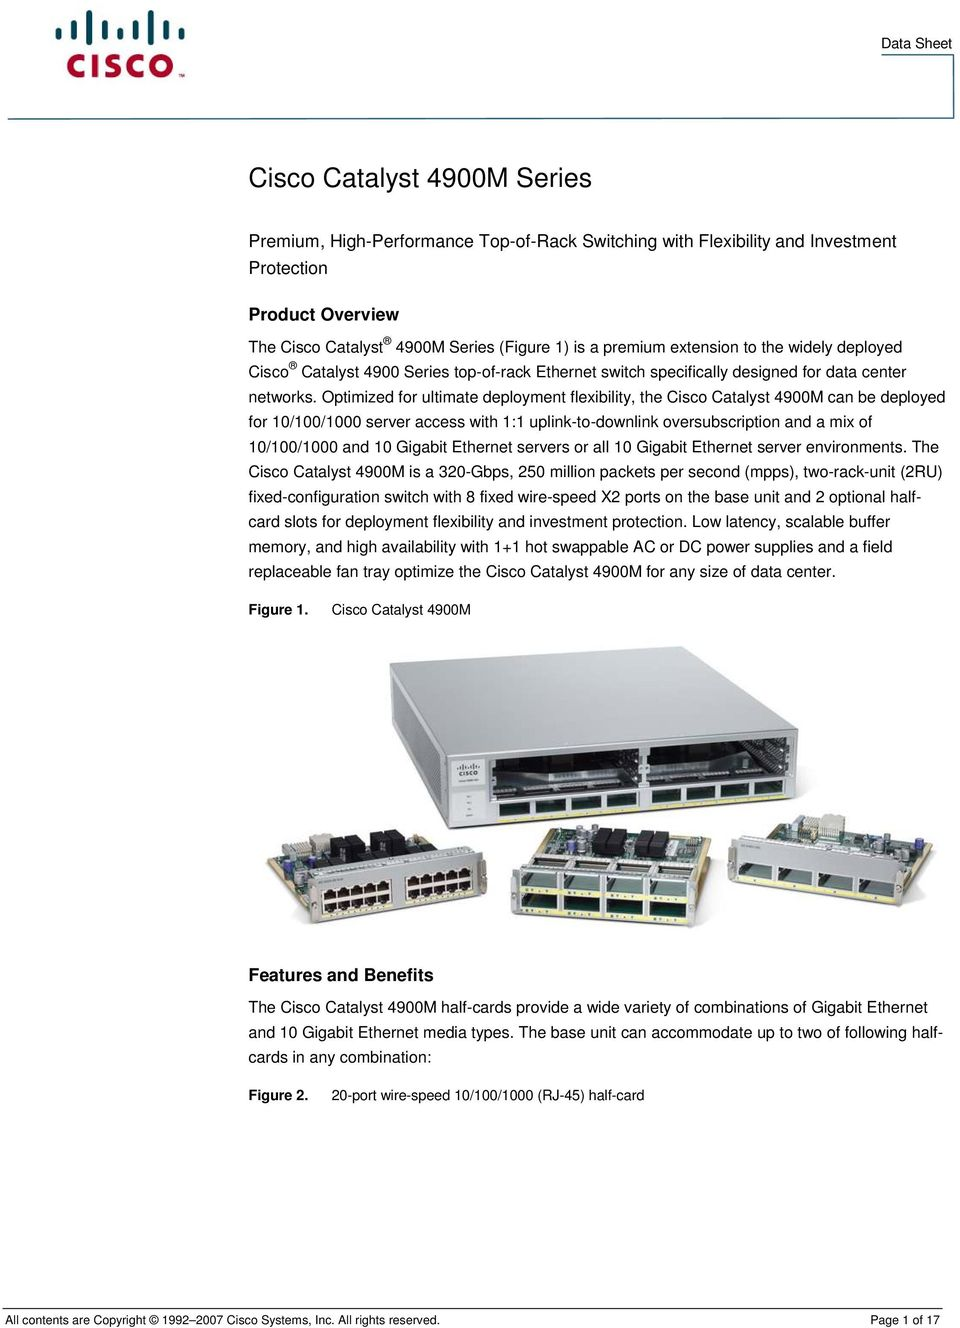 Optimized for ultimate deployment flexibility, the Cisco Catalyst 4900M can be deployed for 10/100/1000 server access with 1:1 uplink-to-downlink oversubscription and a mix of 10/100/1000 and 10